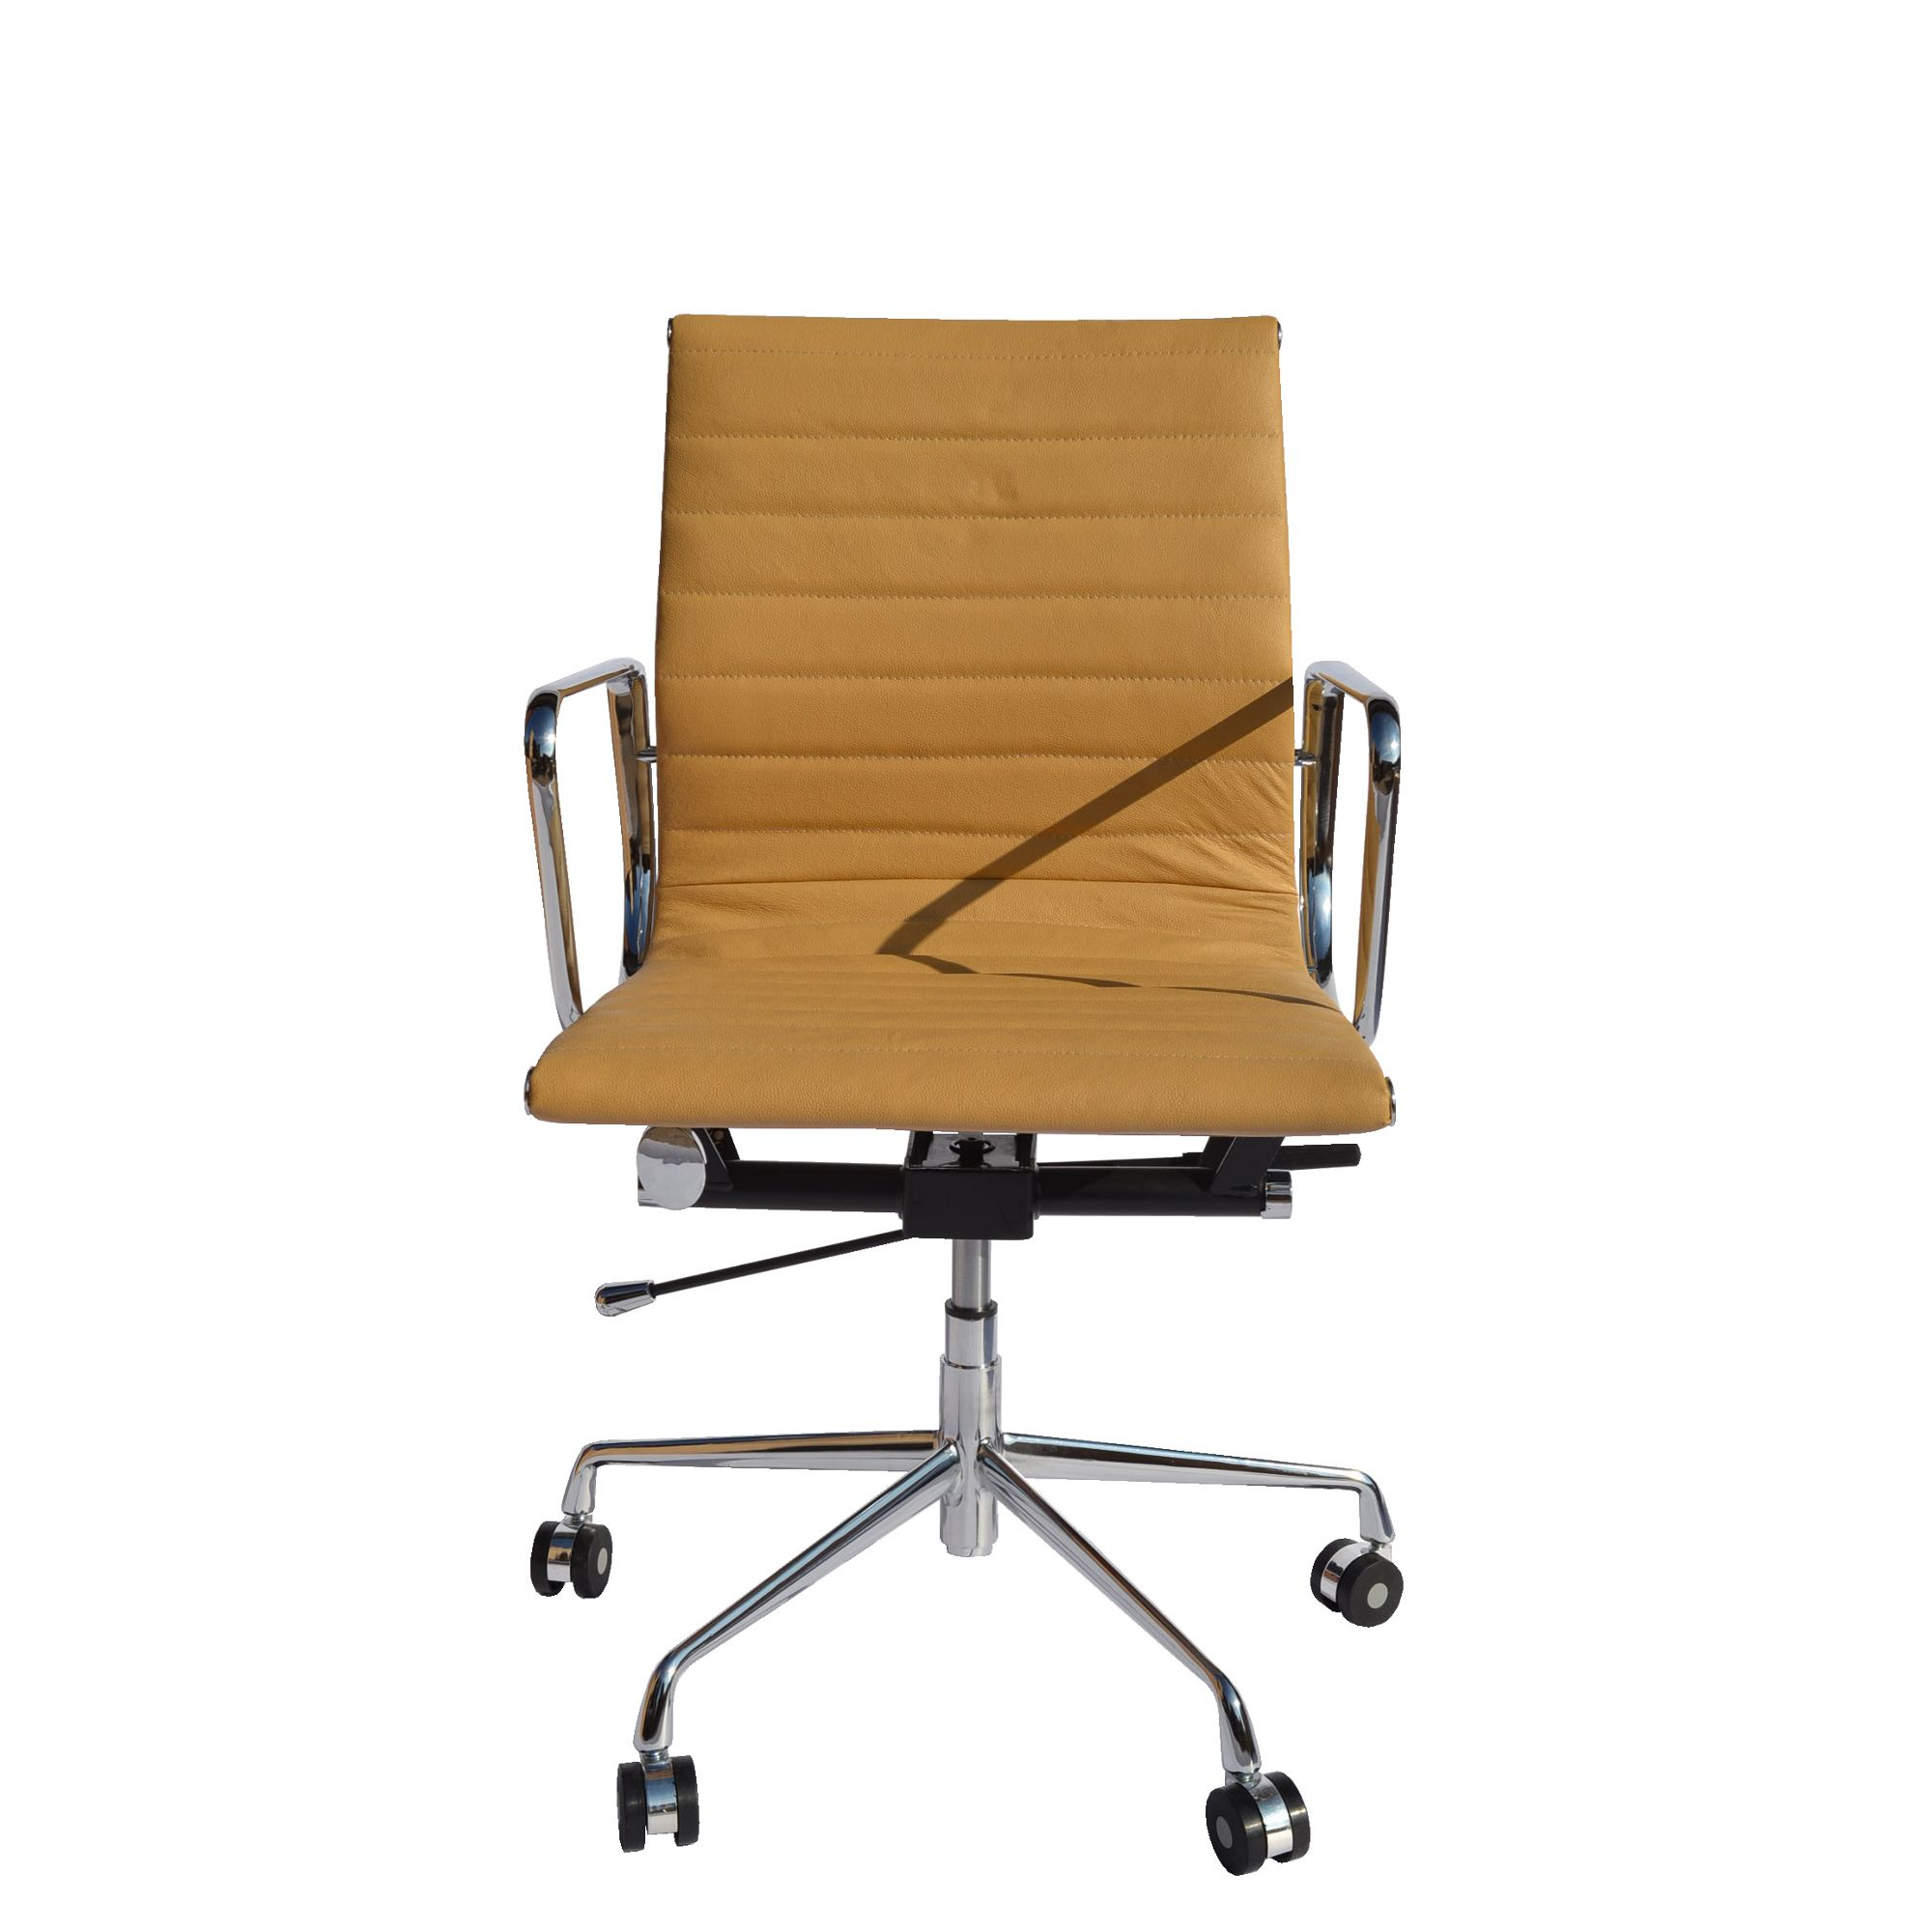 Tan leather office chair - Eames Ea117 Inspired Low Back Ribbed Tan Brown Leather Office Chair